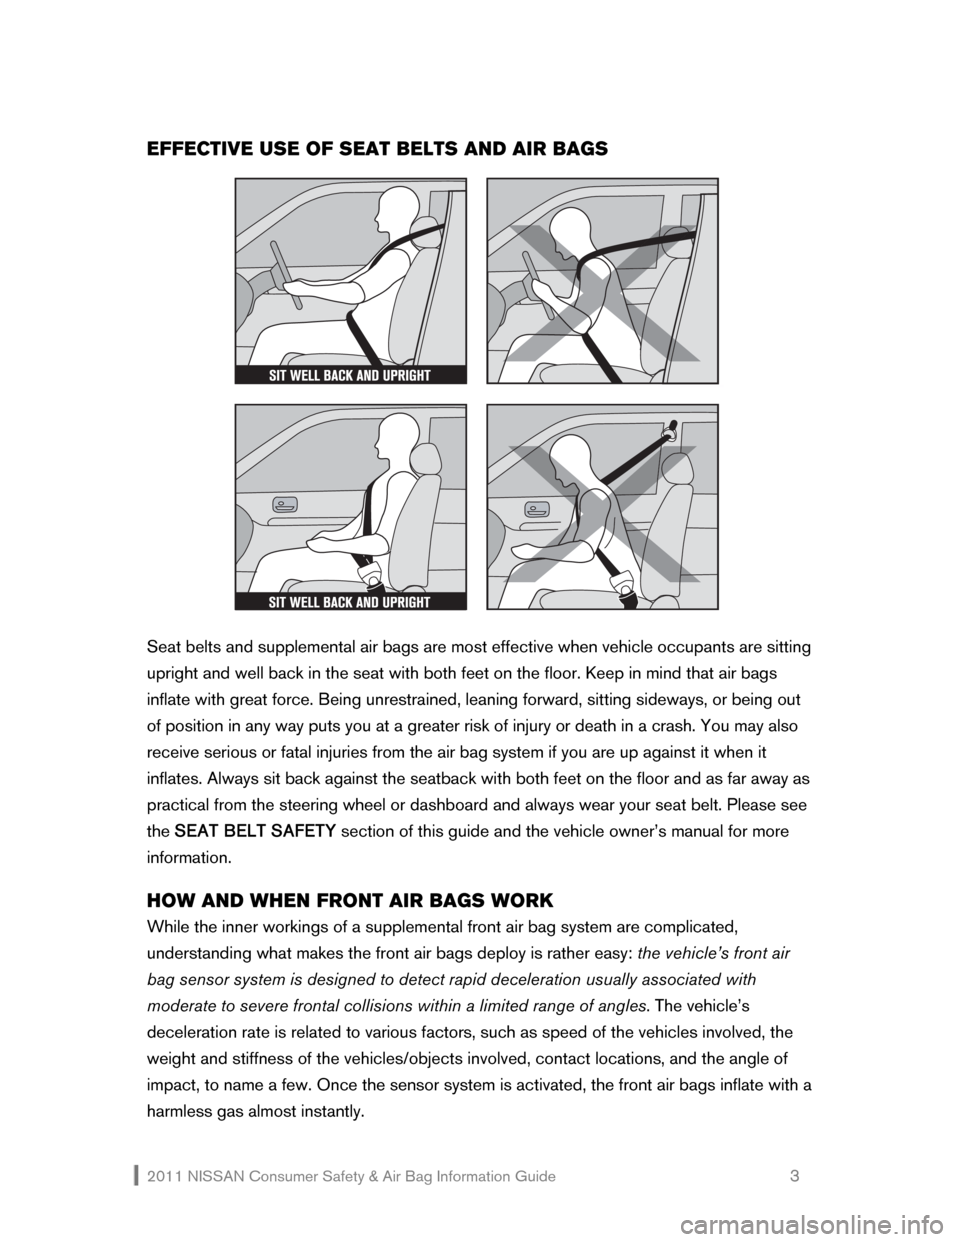 NISSAN VERSA 2011 1.G Consumer Safety Air Bag Information Guide, Page 4